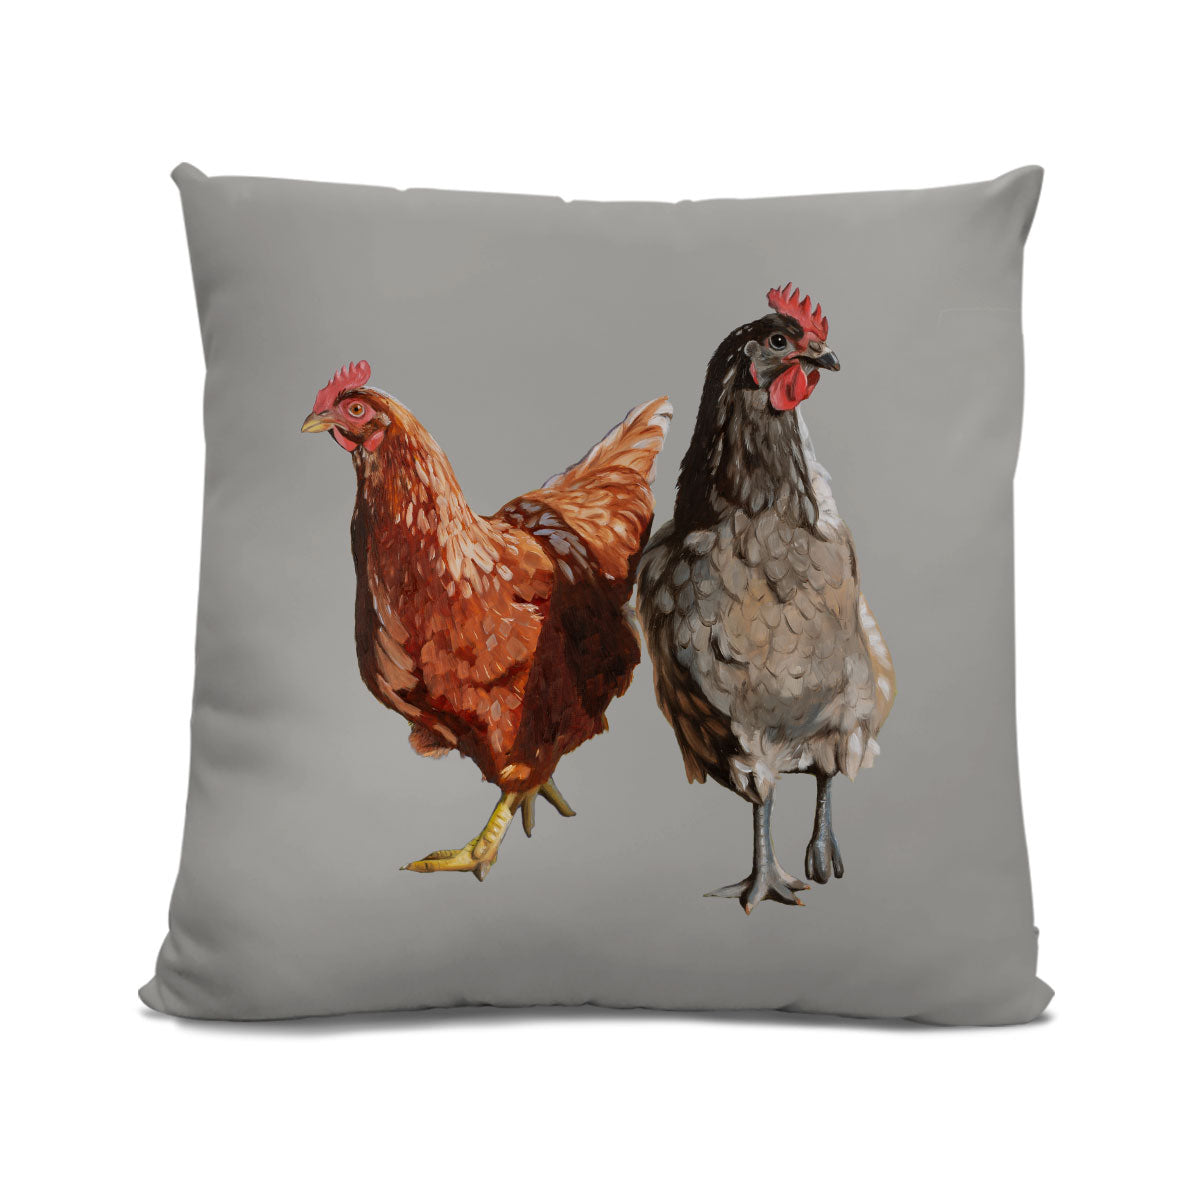 Chicken cushion grey